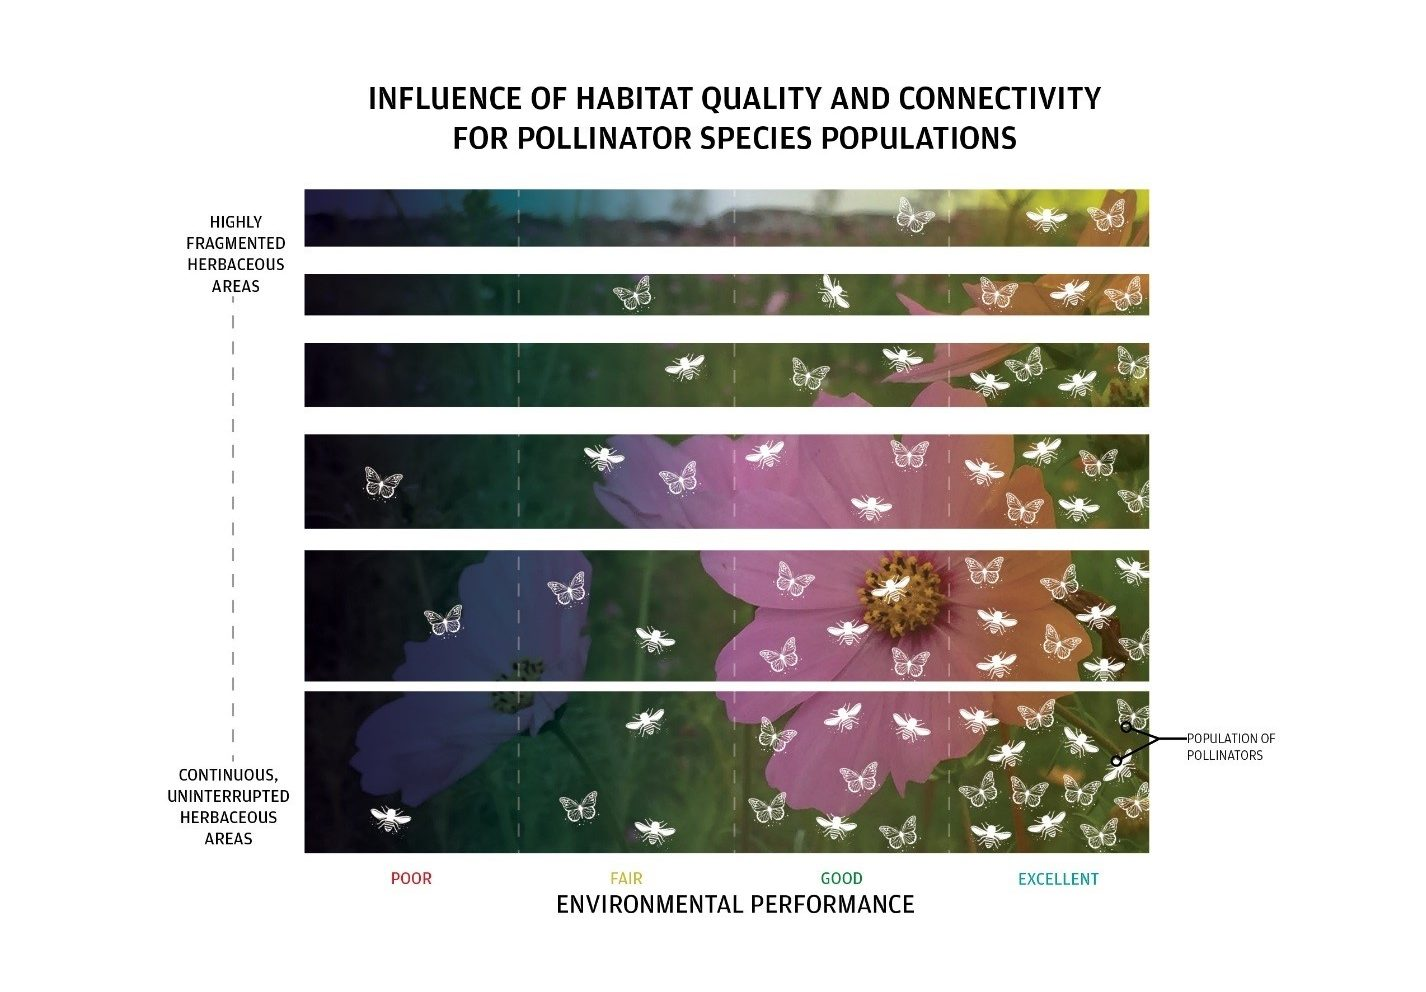 Figure 4: Environmental performance based on connectivity and habitat quality for pollinators. Image Credit: Dig Studio and Great Ecology.